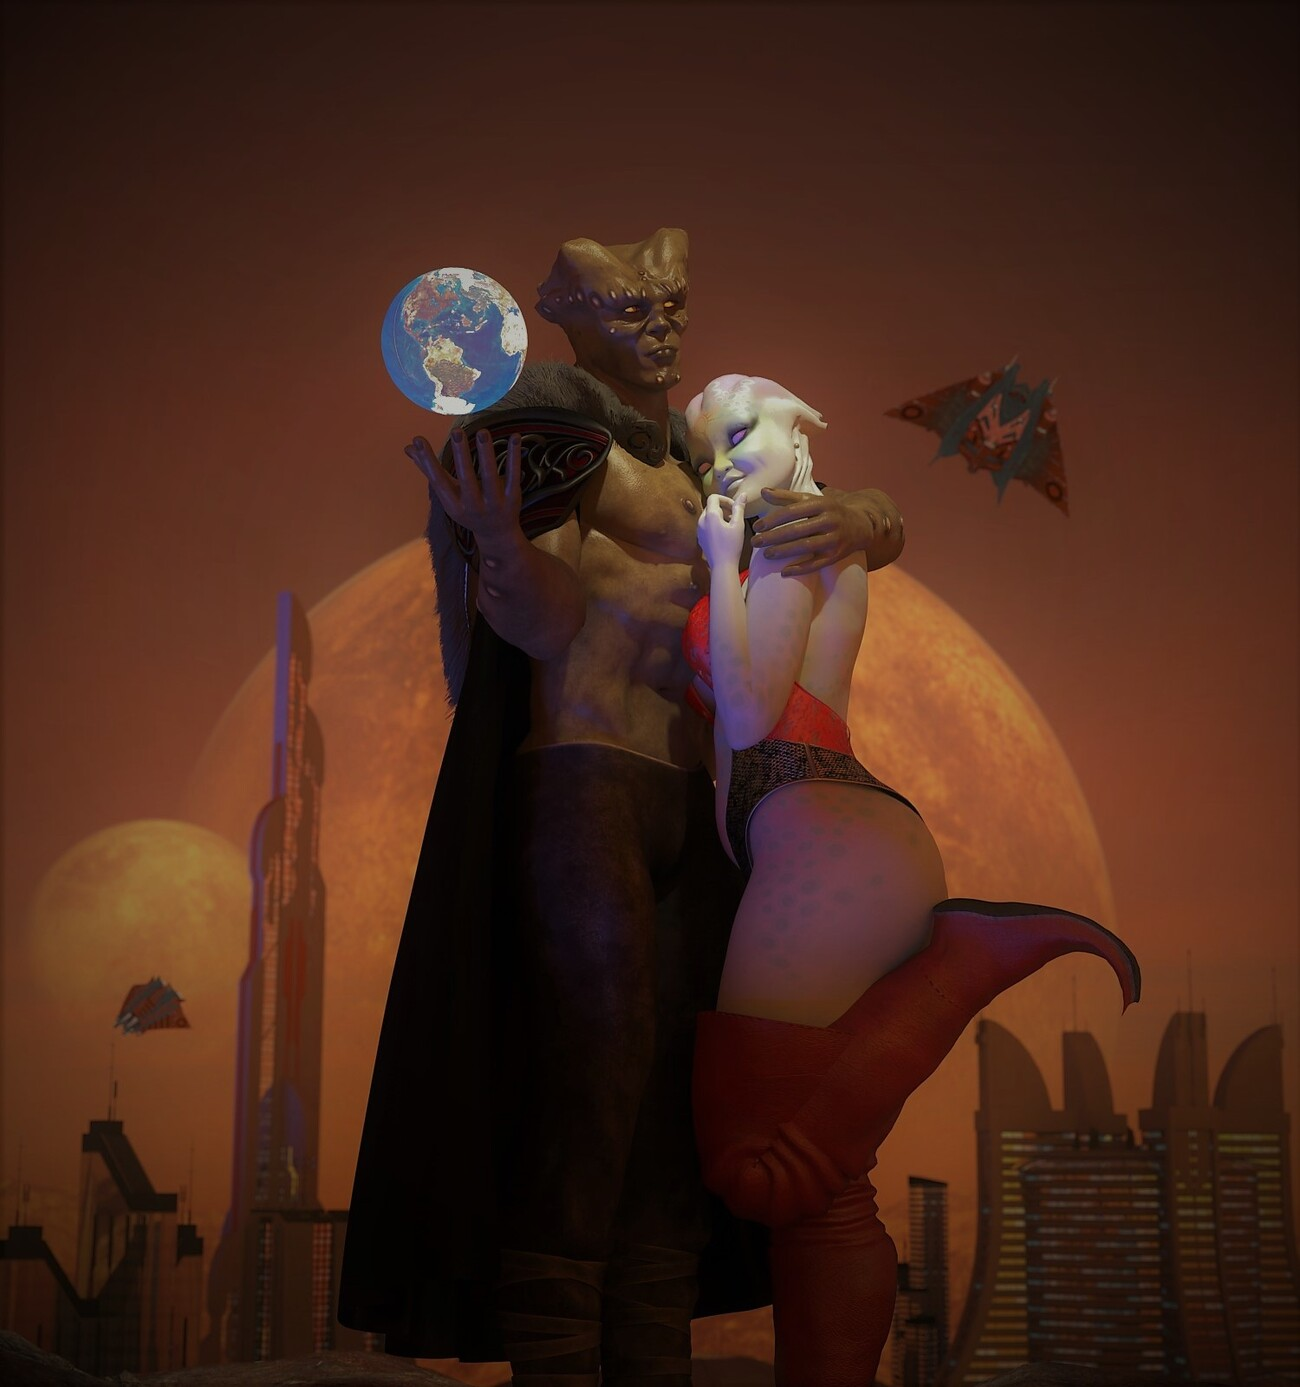 A world for her kiss by poser4me